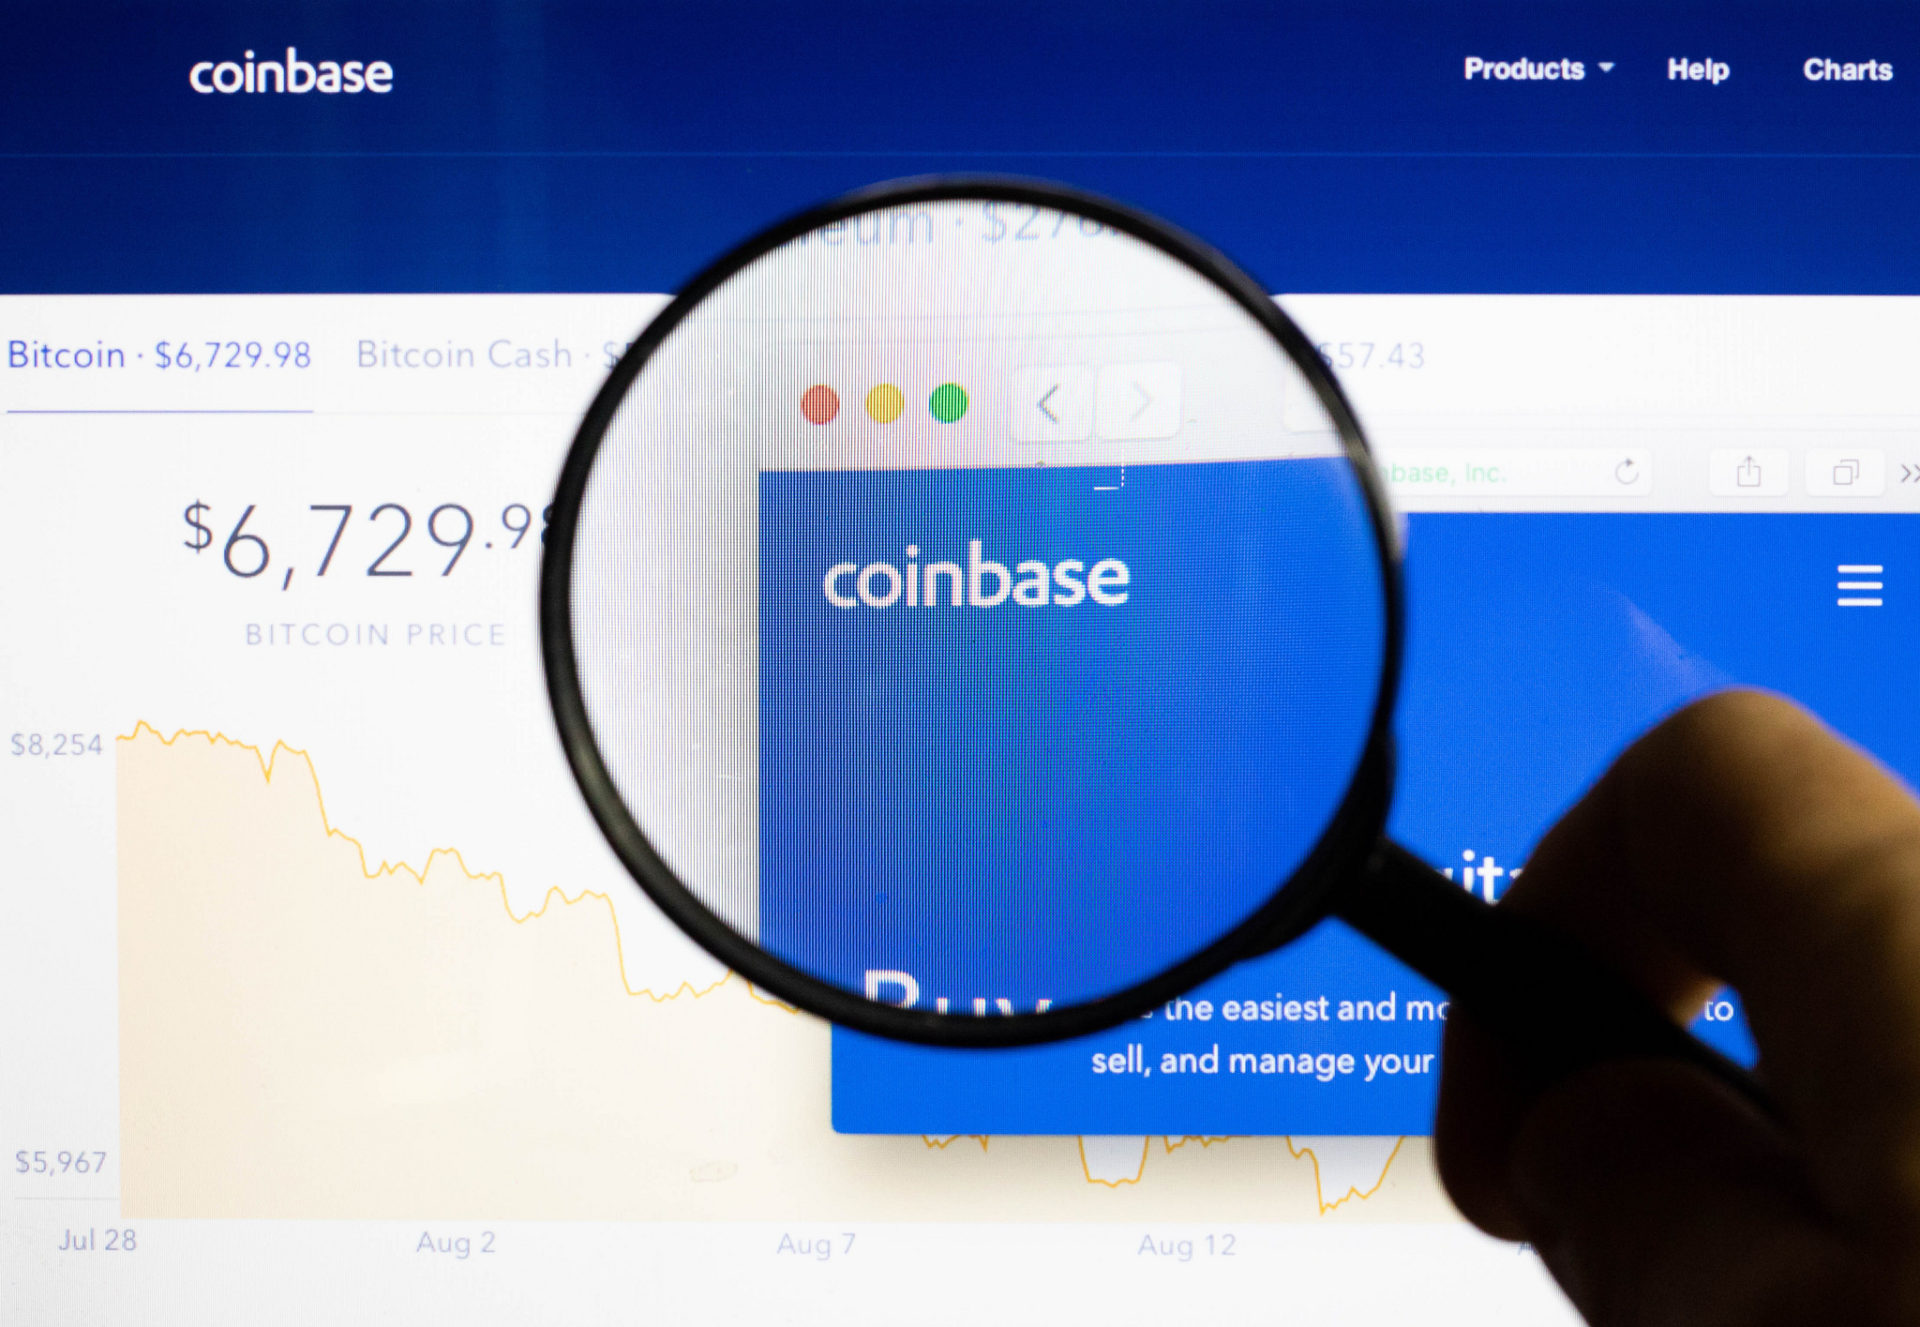 Coinbase Announces the USDC Stablecoin